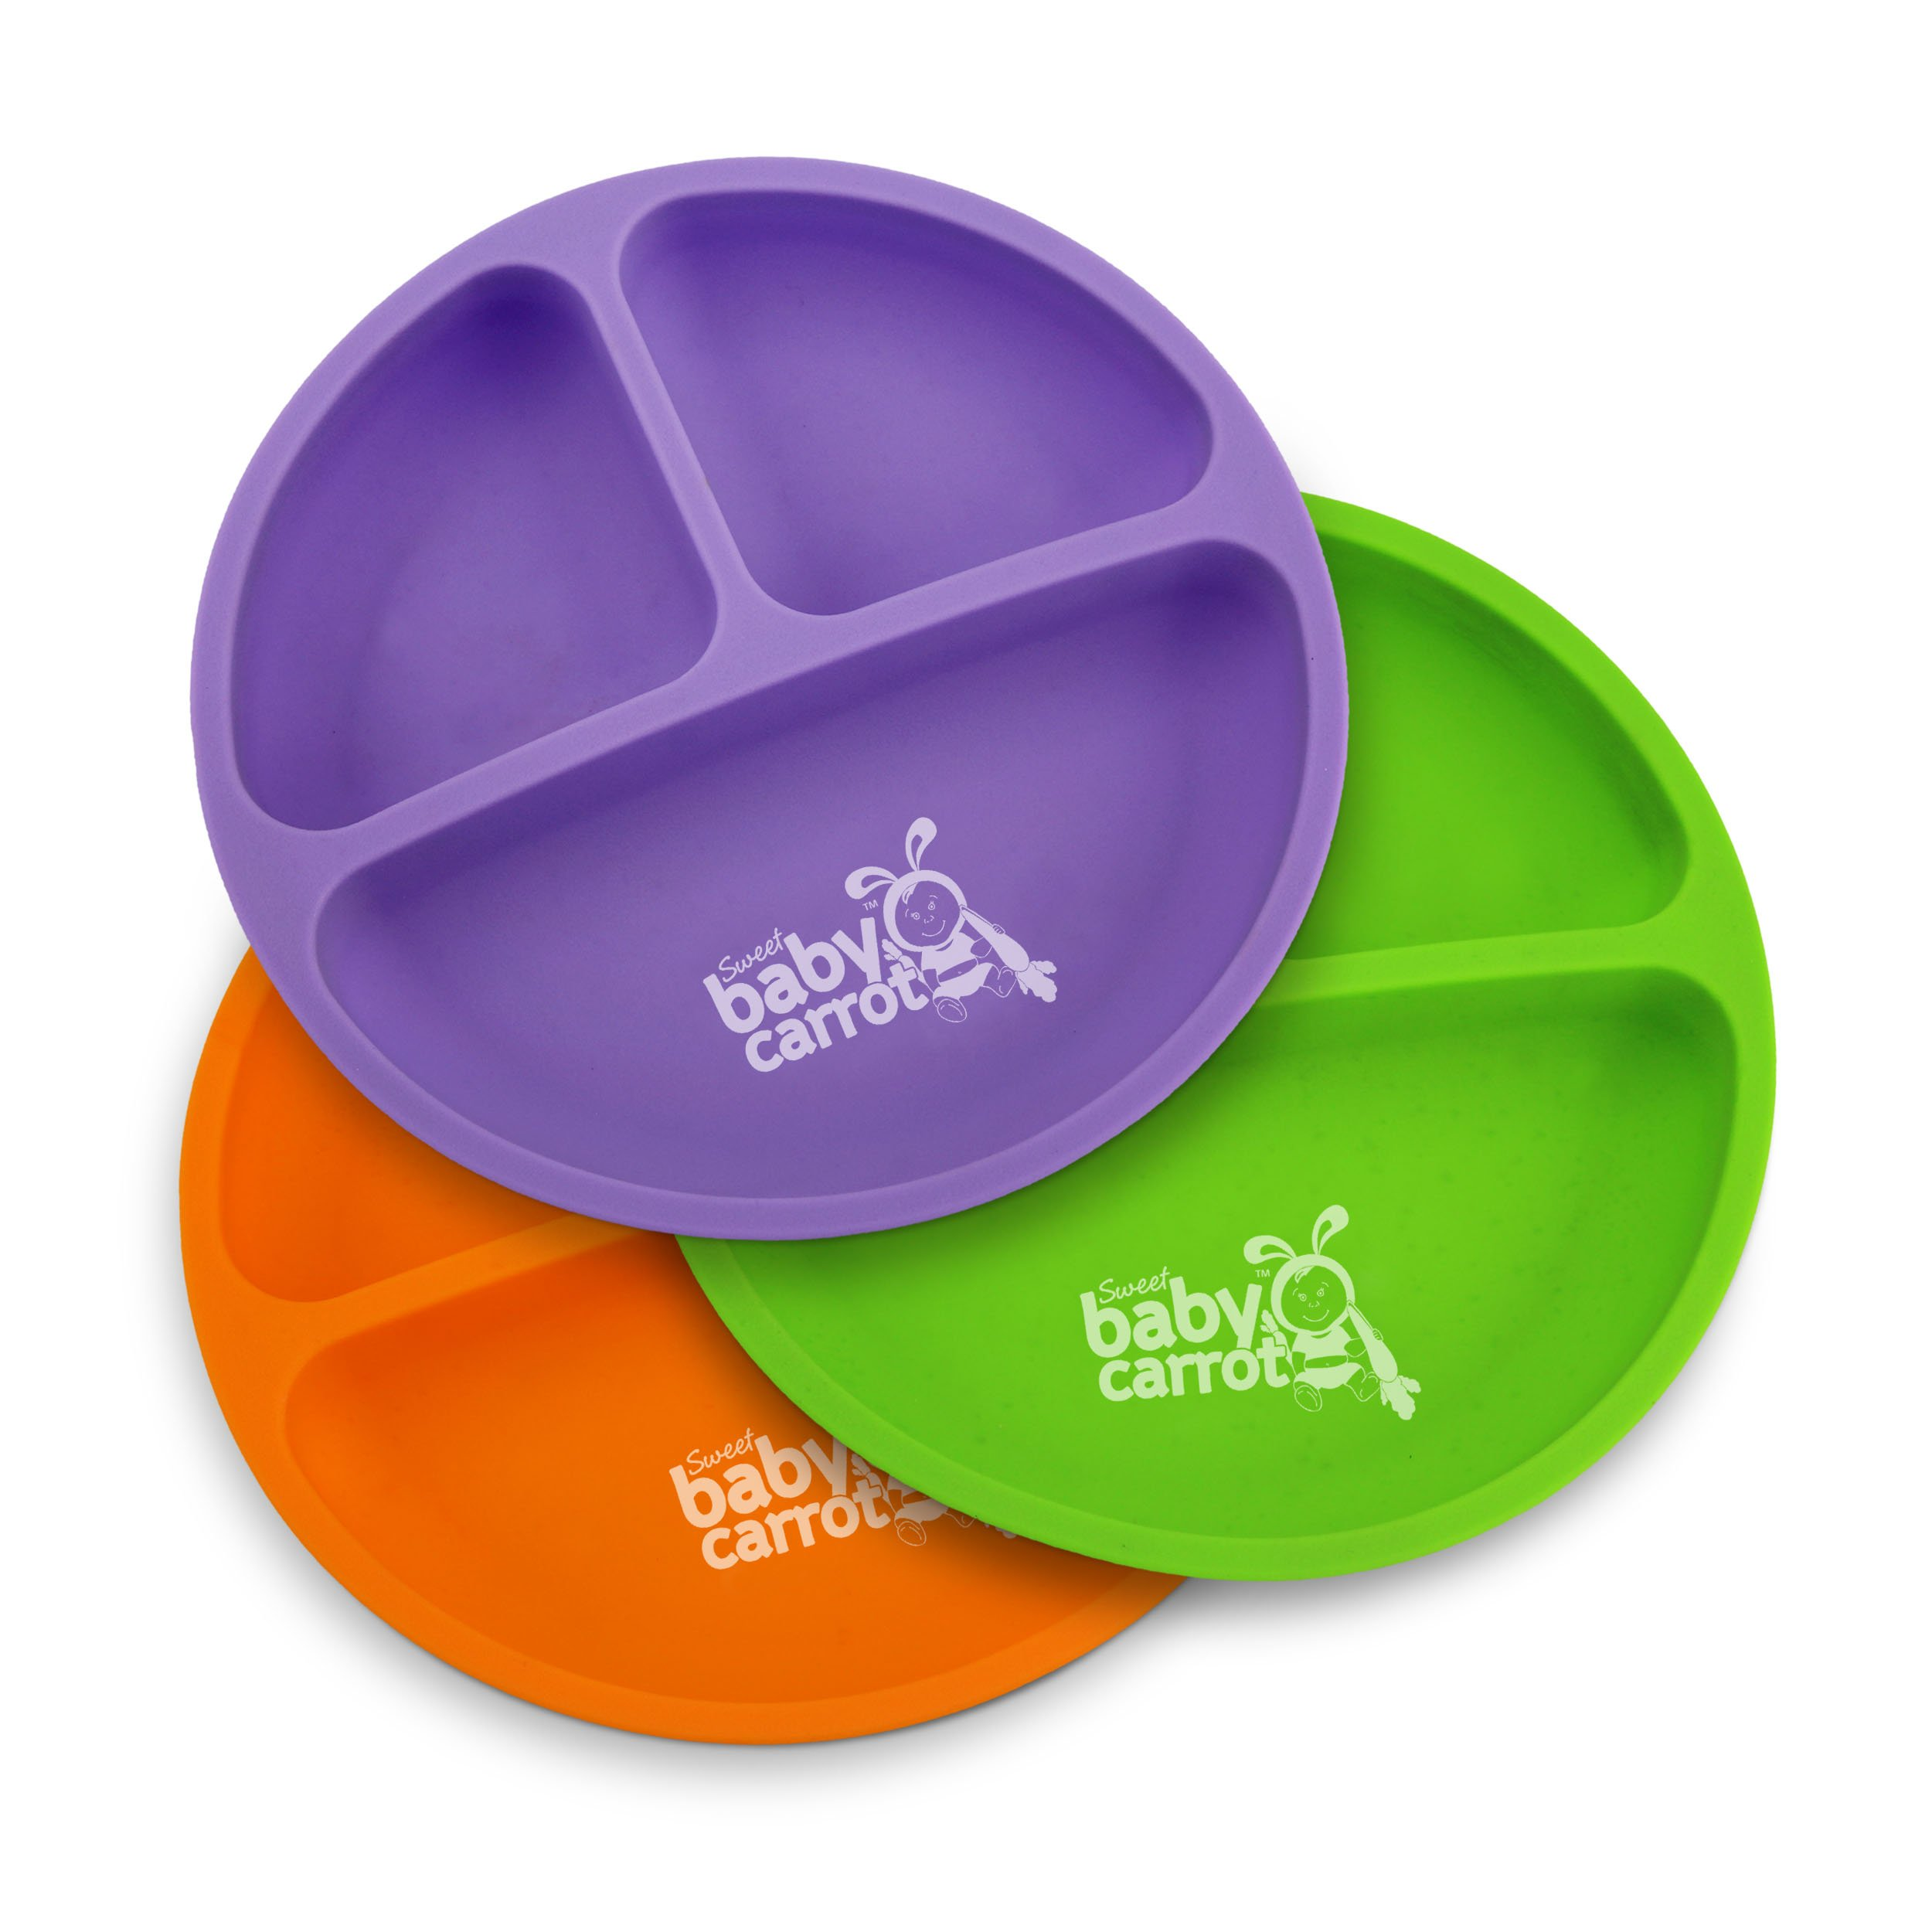 Divided Soft Plates for Baby and Toddler. | Sweet Baby Carrot | Soft, Unbreakable & 100% Safe | BPA Free | 3 Pack Set | Assorted Colors (Purple, Green, Orange) | Silicone